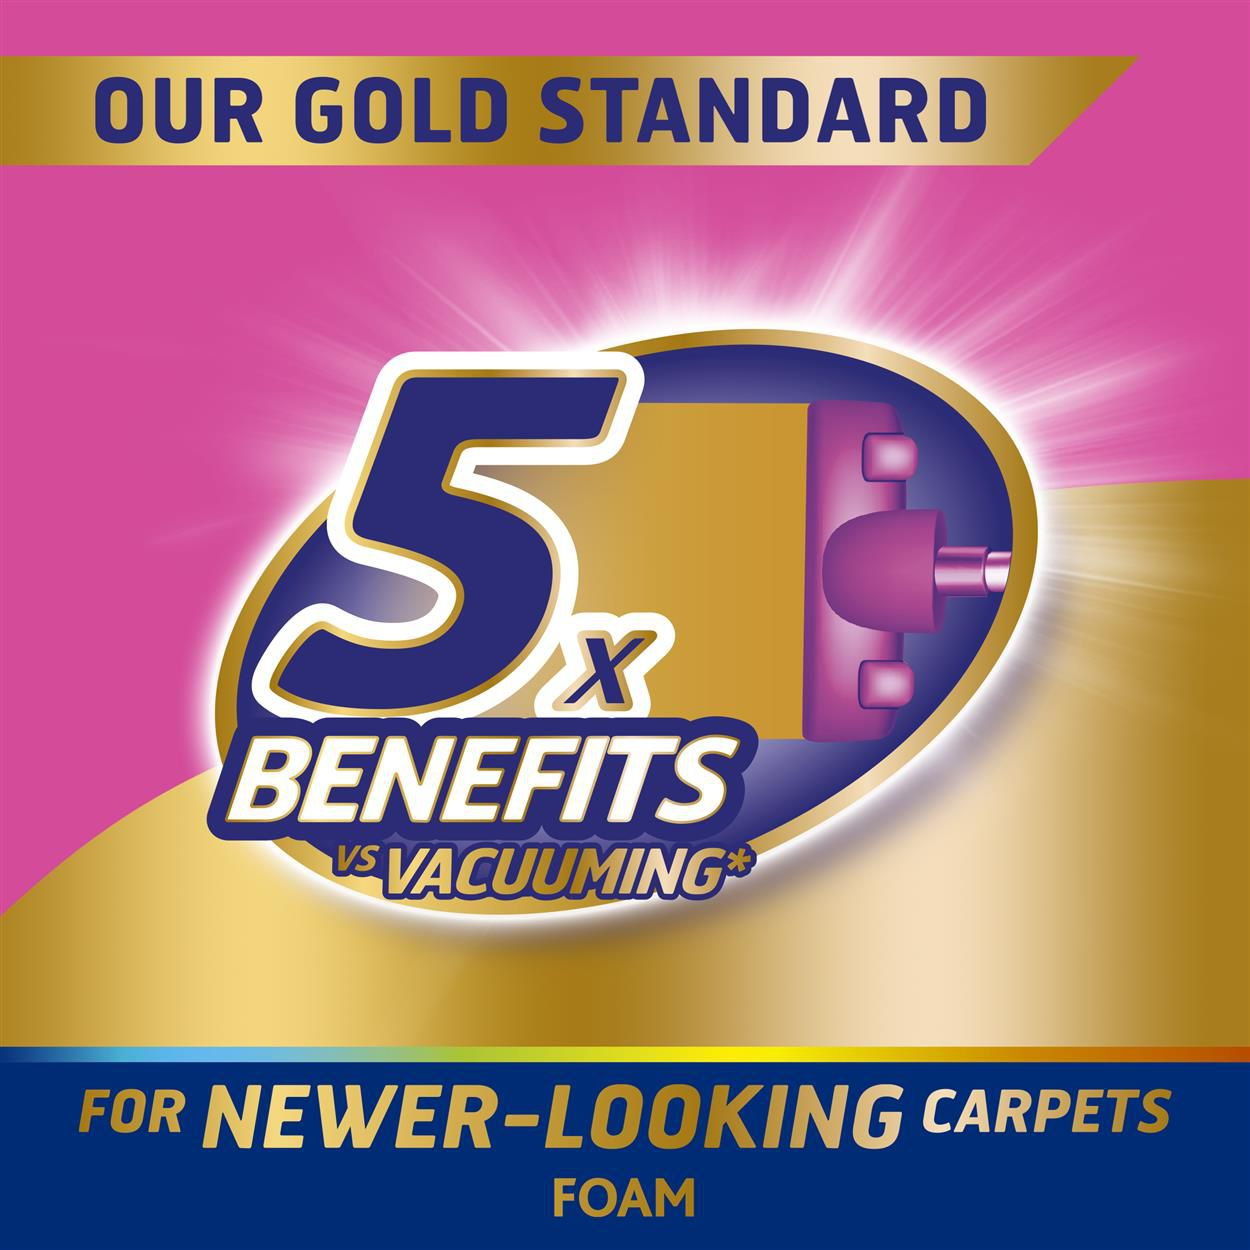 Vanish Gold Carpet Care Powder Carpets And Rugs Vanish Uk